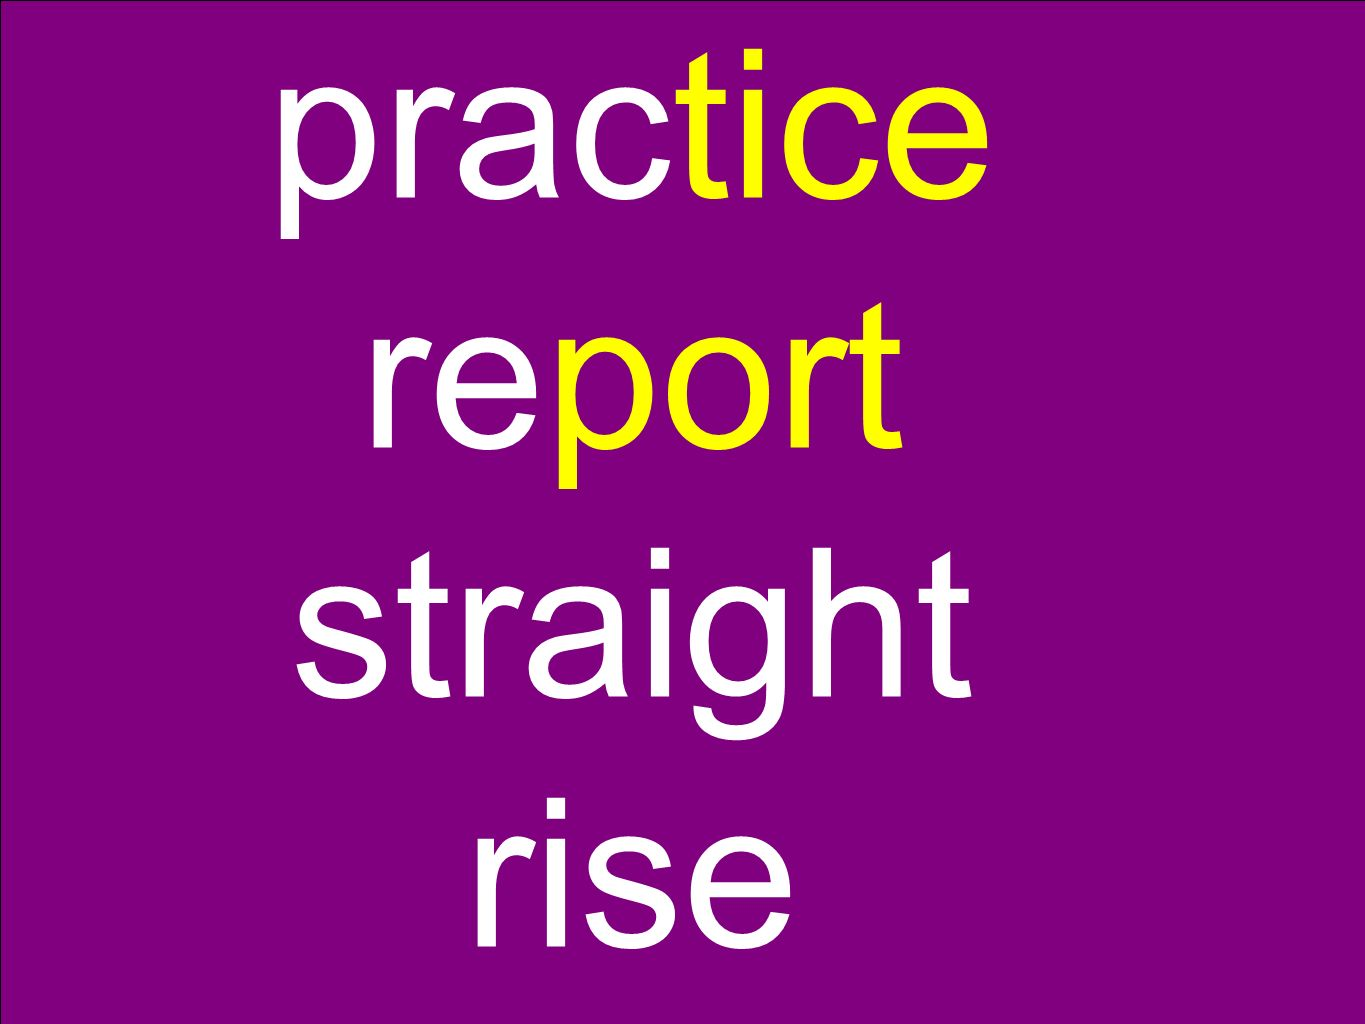 practice report straight rise